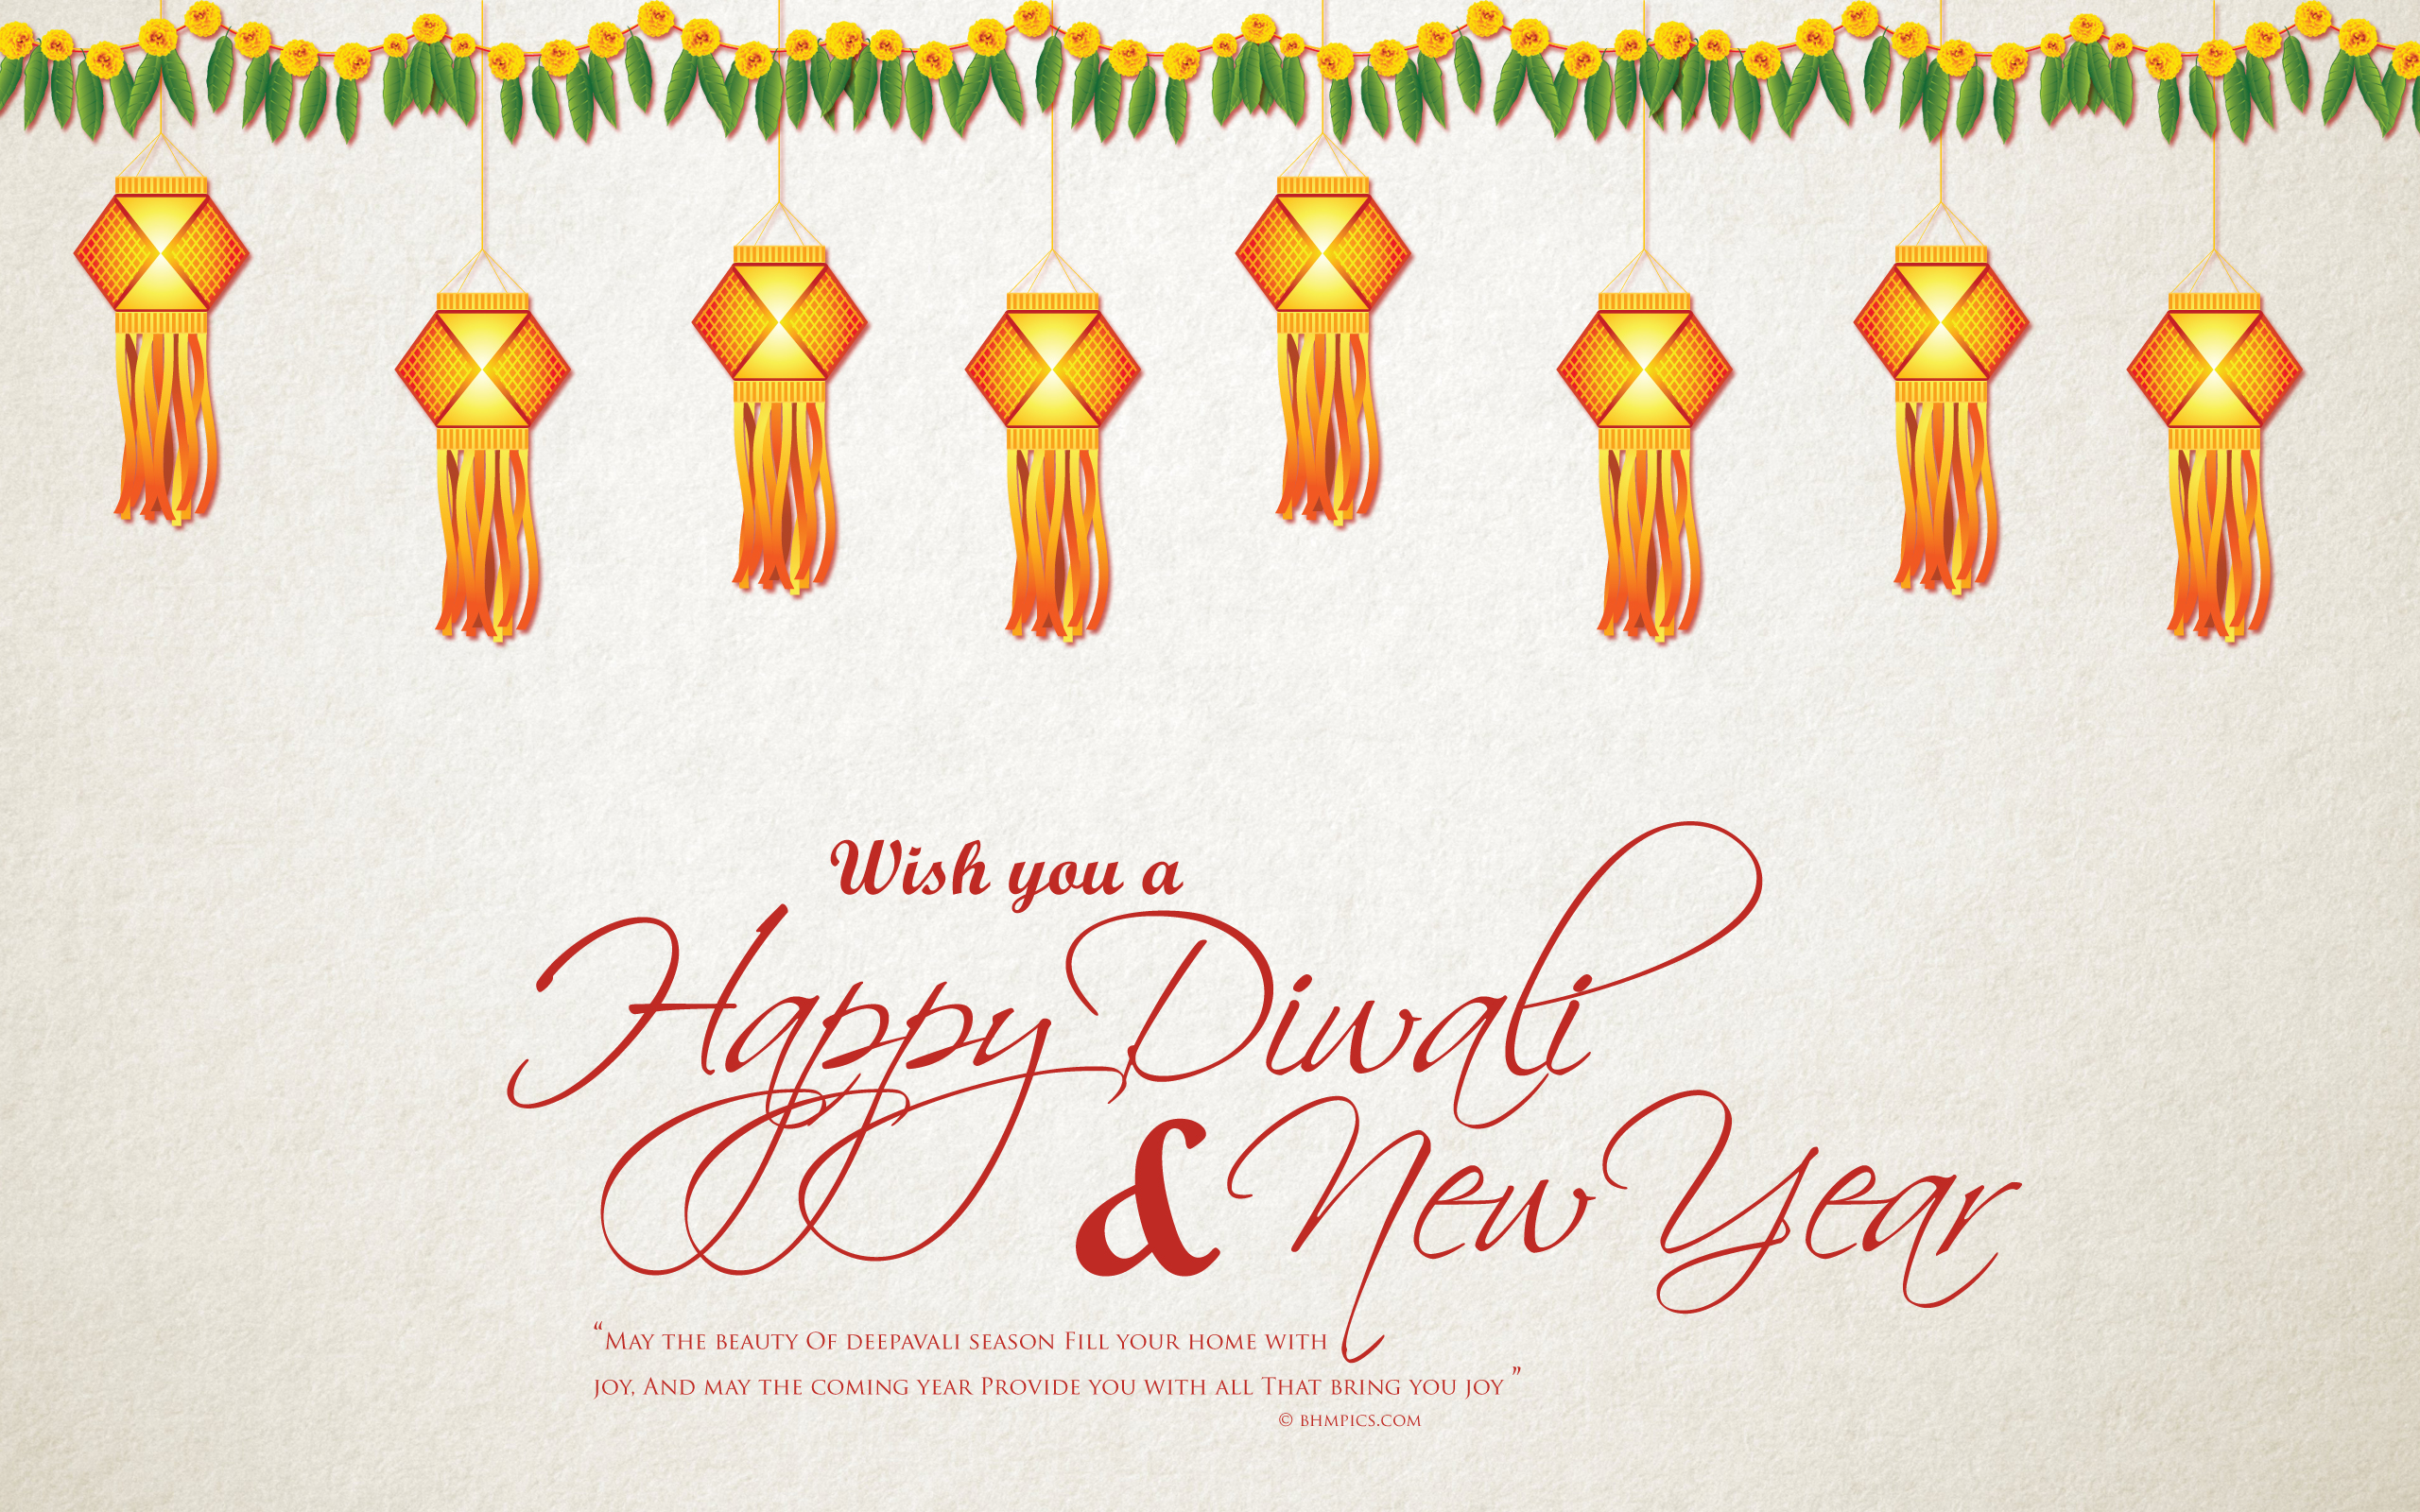 Diwali New Year Wallpaper